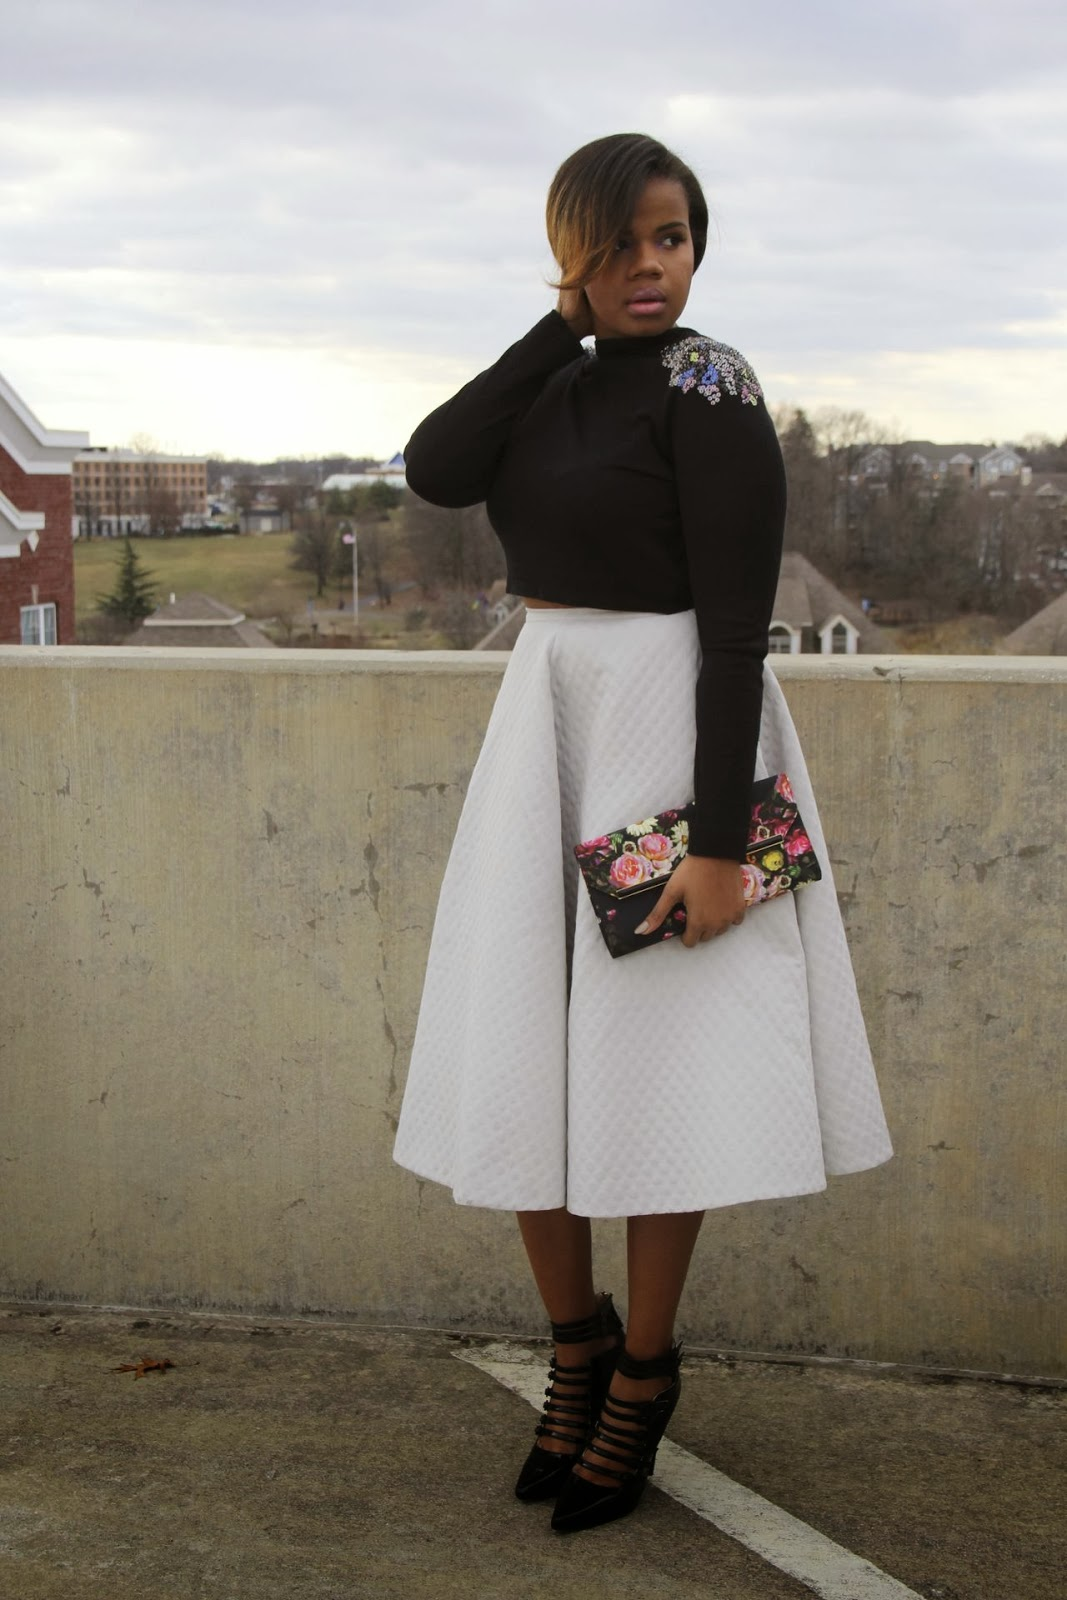 Via Black Girls Killing It: All About Fashion: Ideas For Crop Top/Skirt